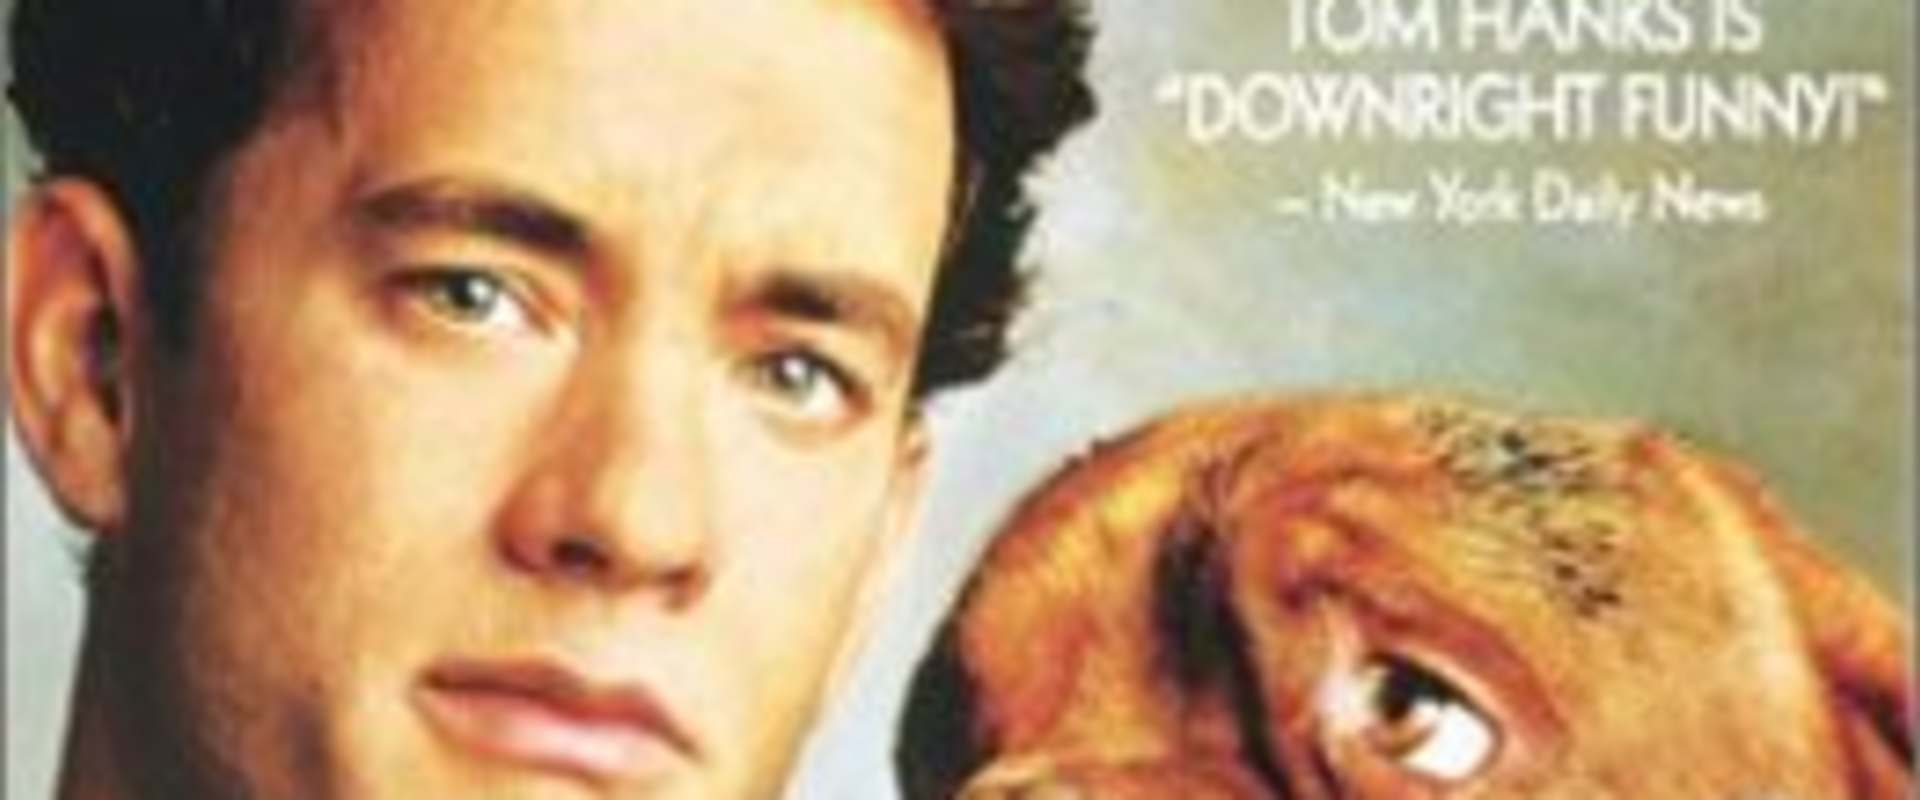 Turner & Hooch background 1